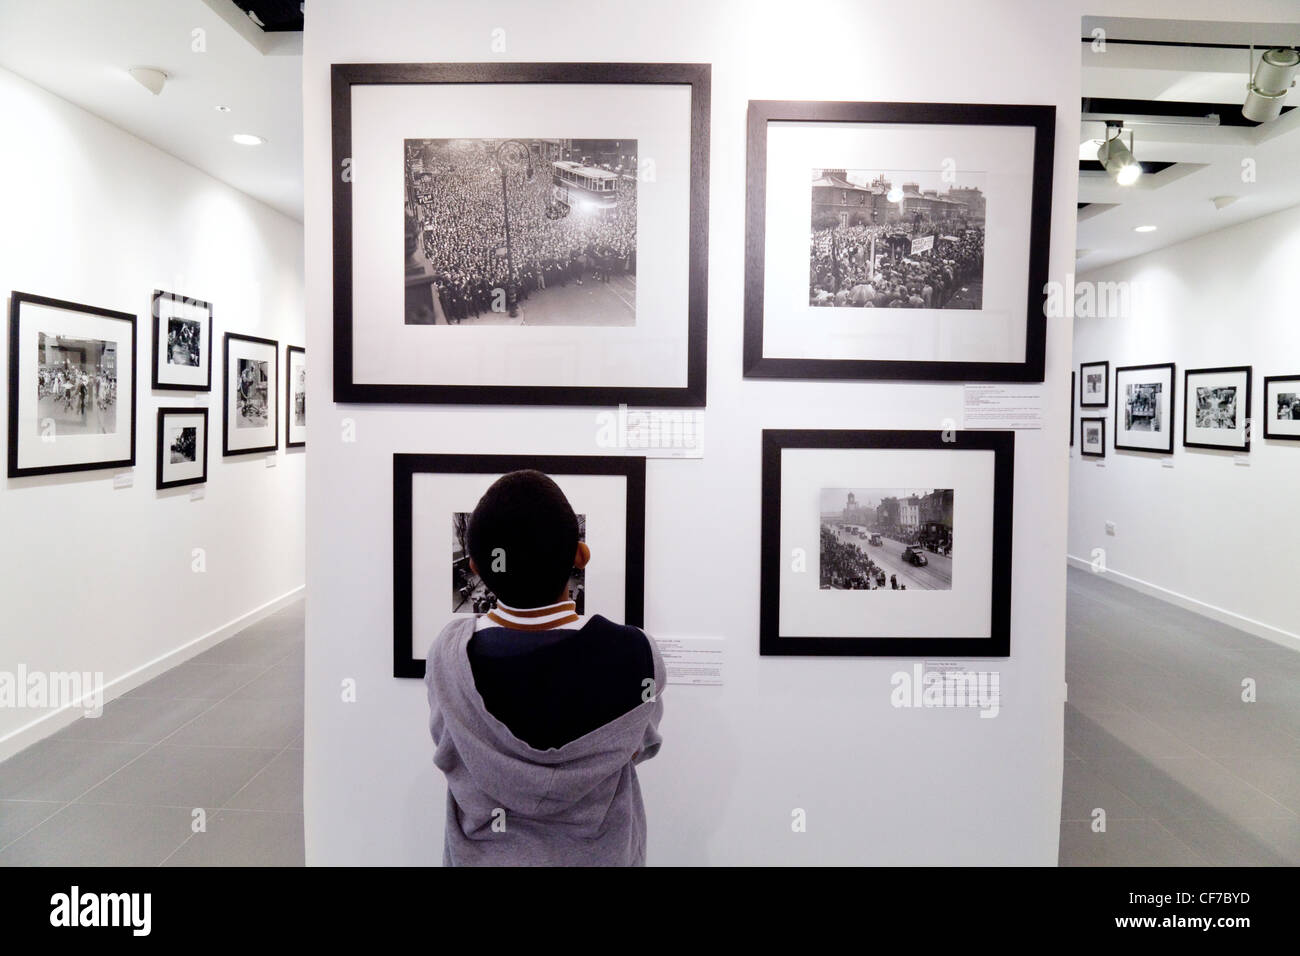 A child looking at photos in the Getty gallery, Westfield shopping centre Stratford London UK - Stock Image